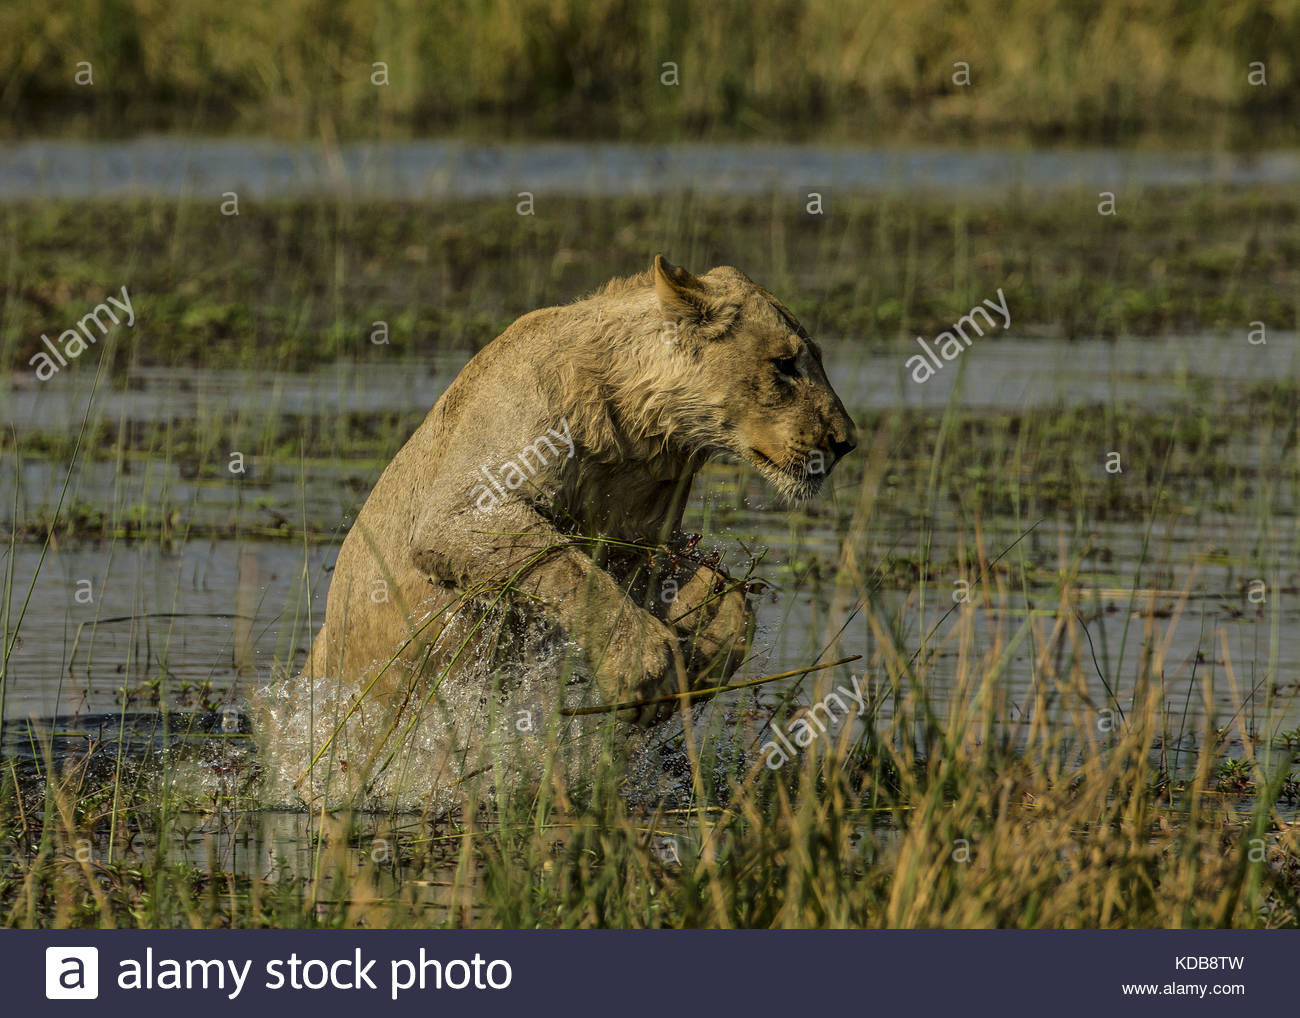 A young lion, Panthera leo, leaps out the water to the spillway bank. - Stock Image